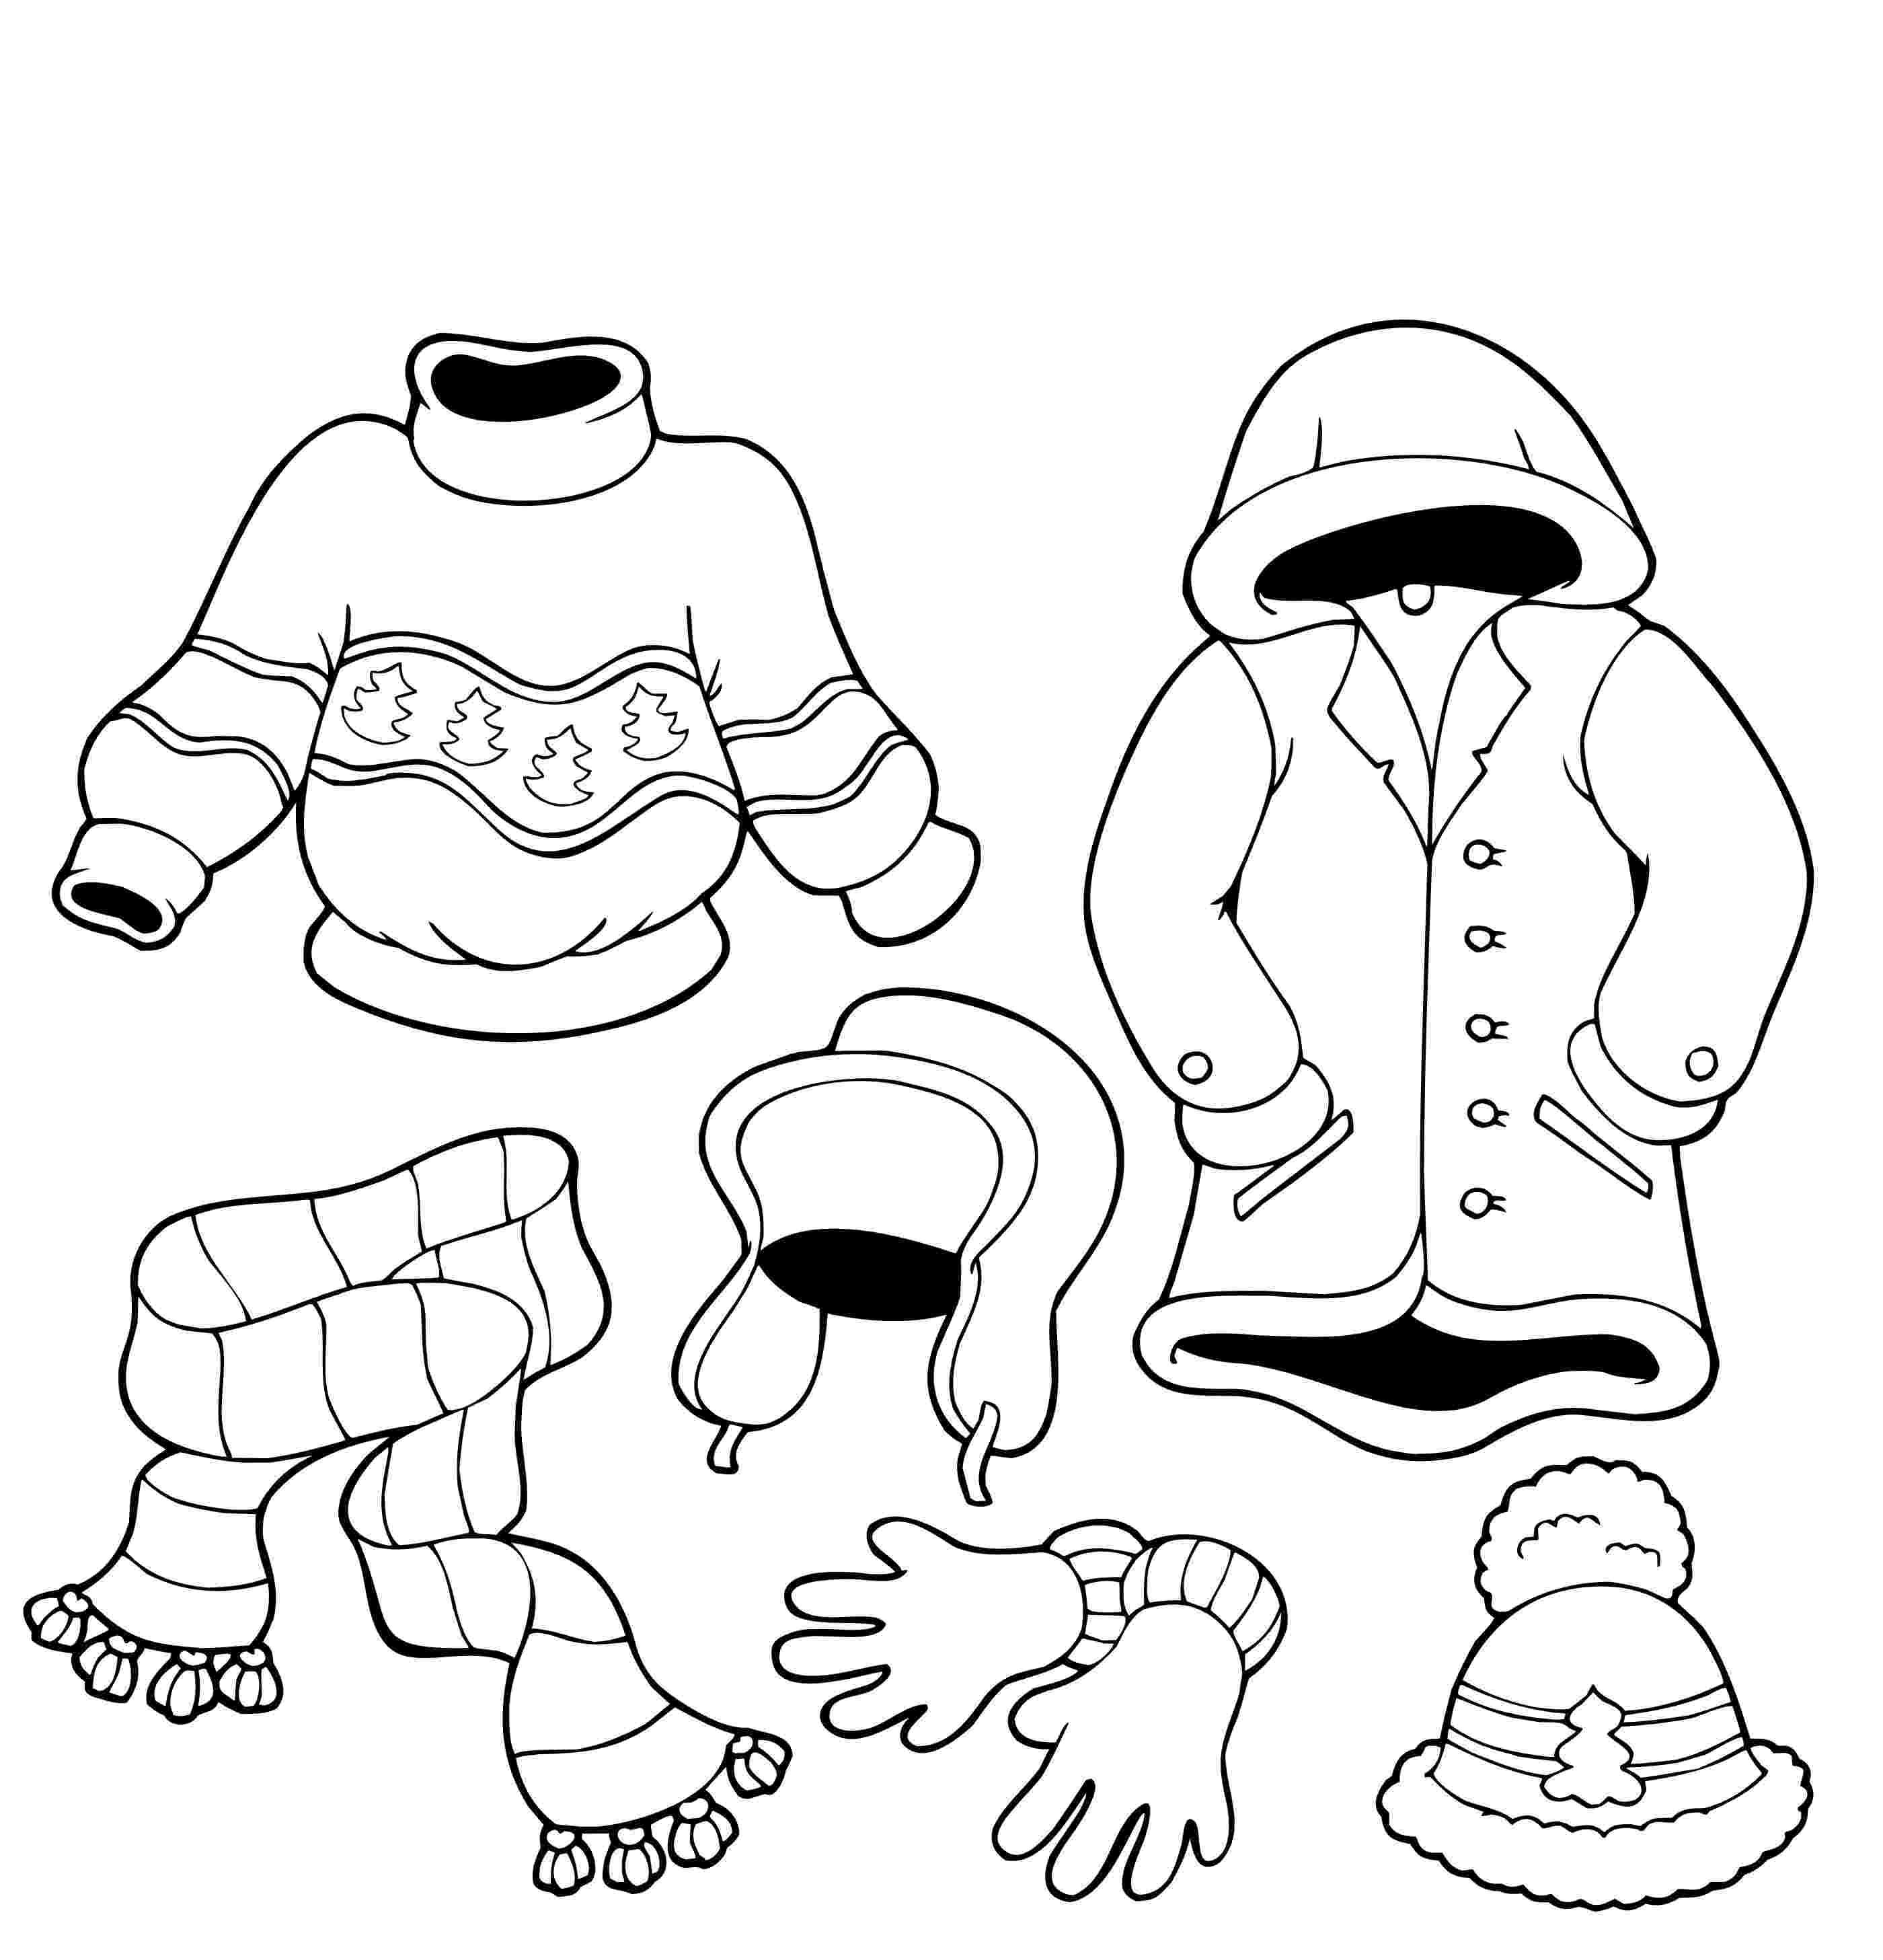 coloring pages of winter clothes winter clothes coloring page preschool ideas pinterest of clothes pages winter coloring